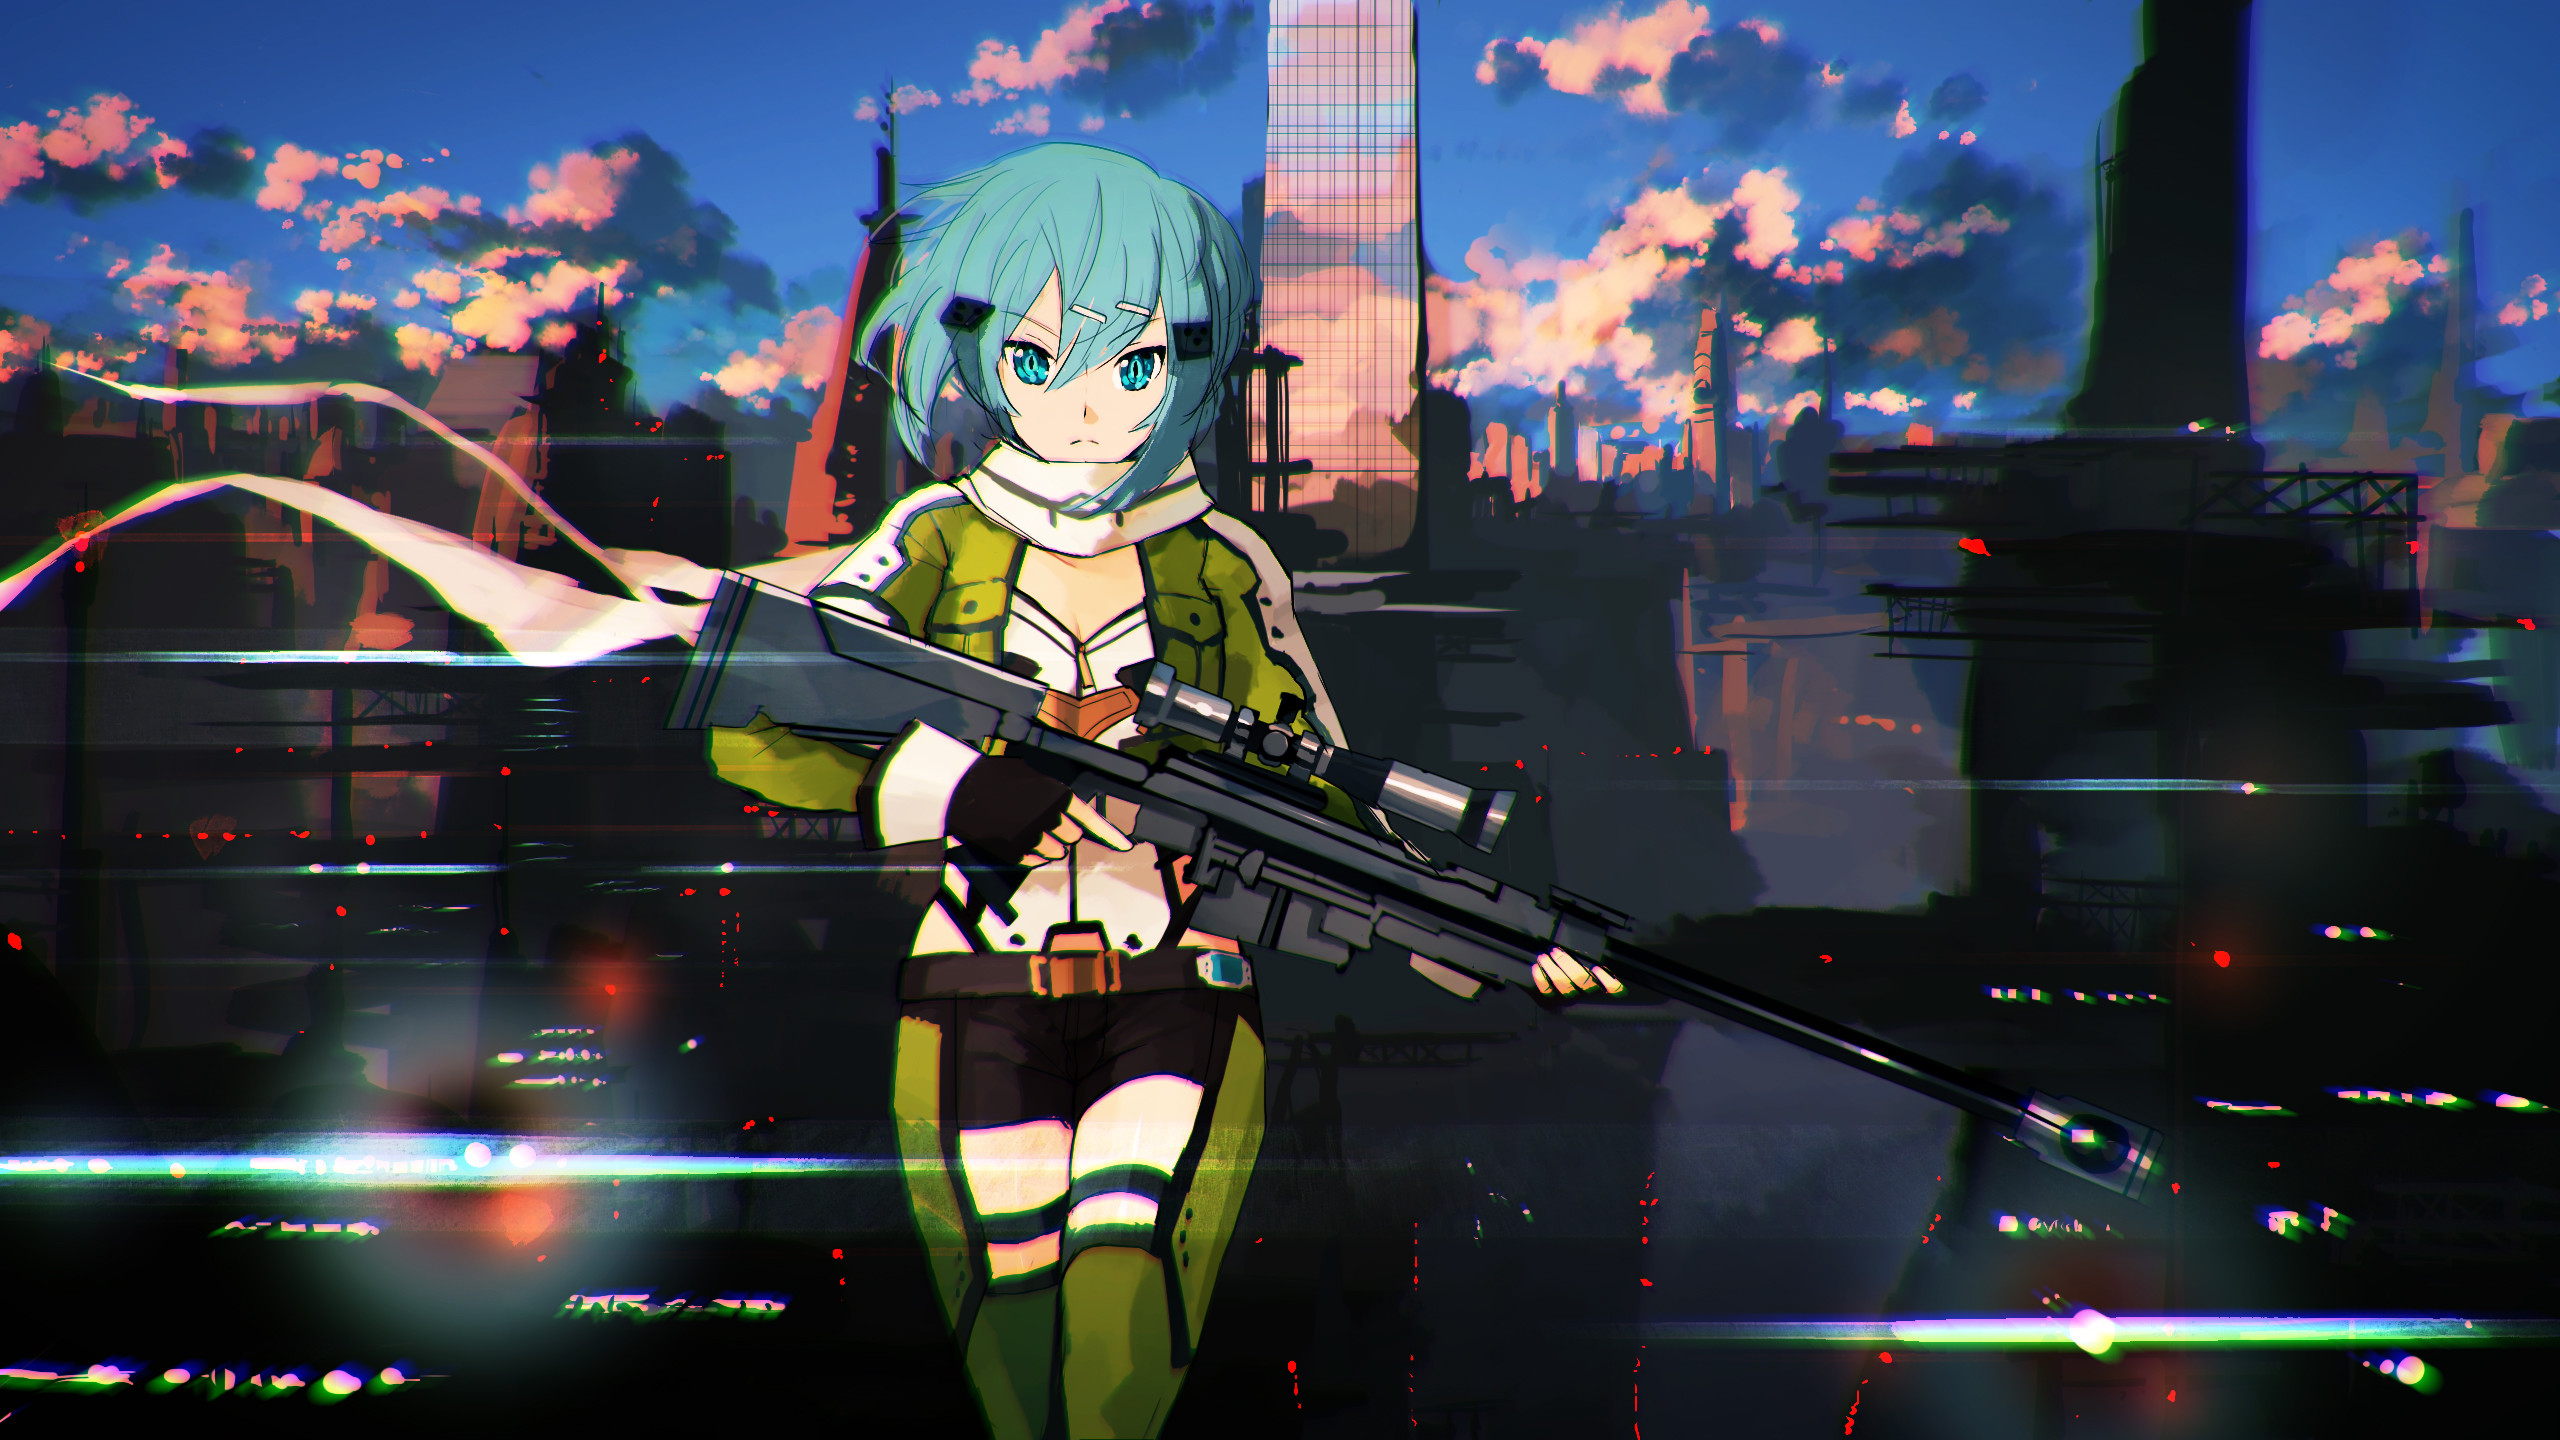 Ready For Shooting, Sword Art Online Wallpaper, Hd Image, Picture